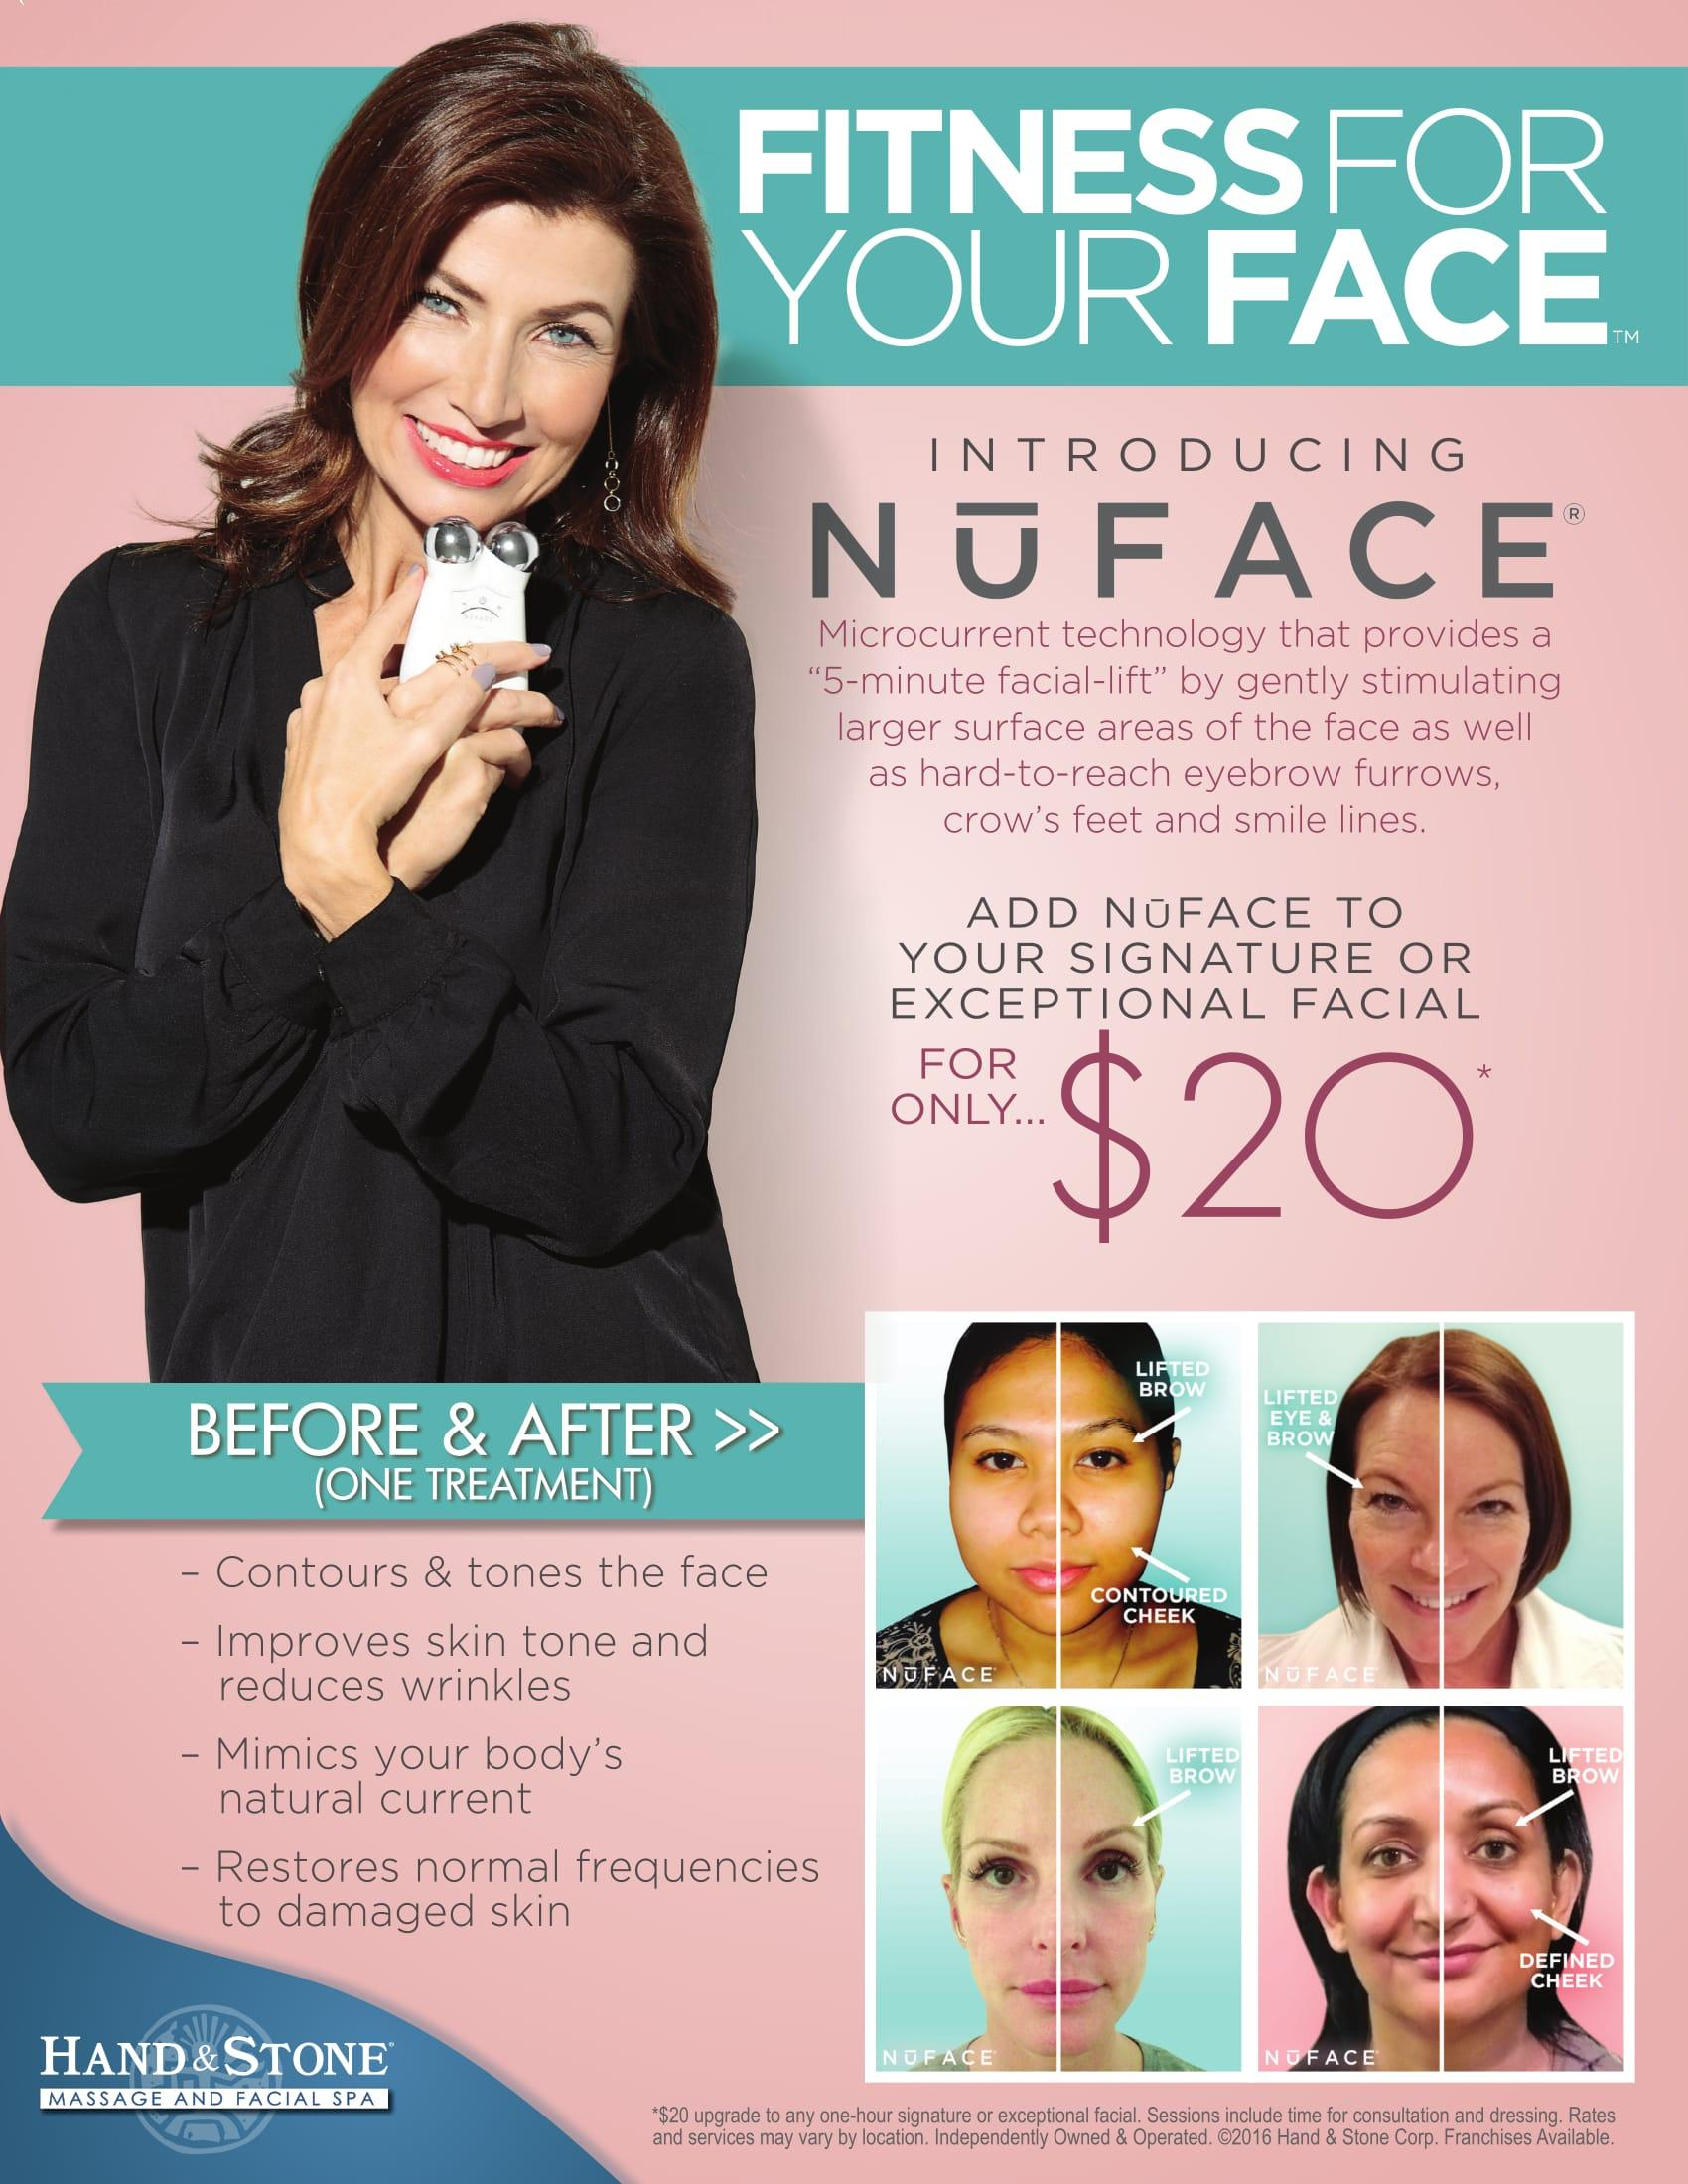 Introducing NuFACE